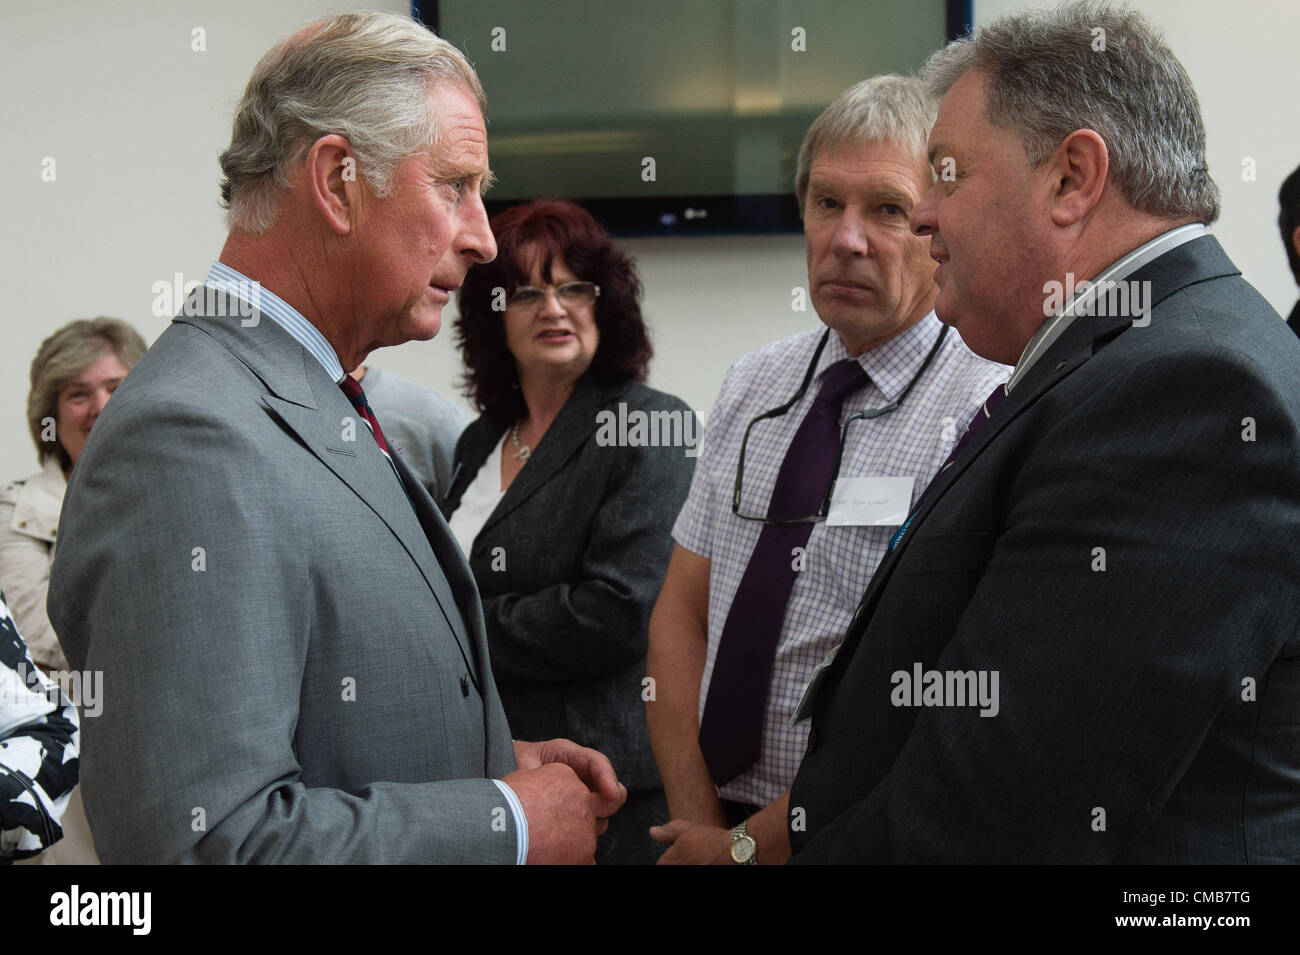 July 9 2012  Prince Charles and the Duchess of Cornwall meet victims of June's floods,  members of the emergency - Stock Image